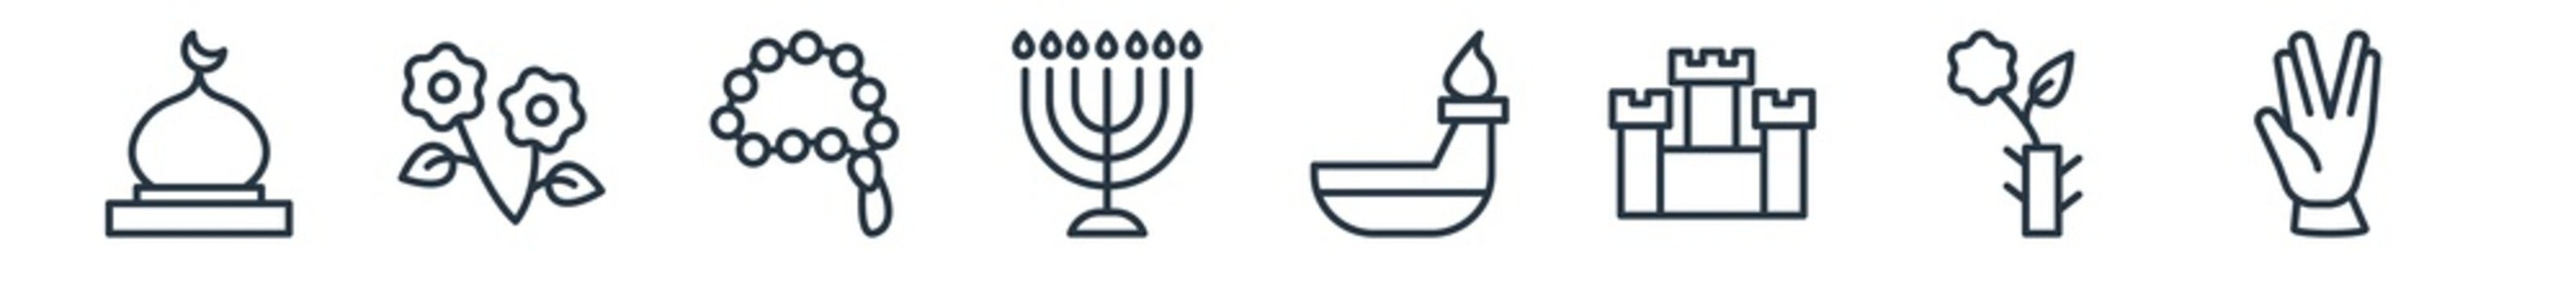 linear set of religion outline icons. line vector icons such as mosque domes, flowers, muslim tasbih, big menorah, dipa, ohr vector illustration.